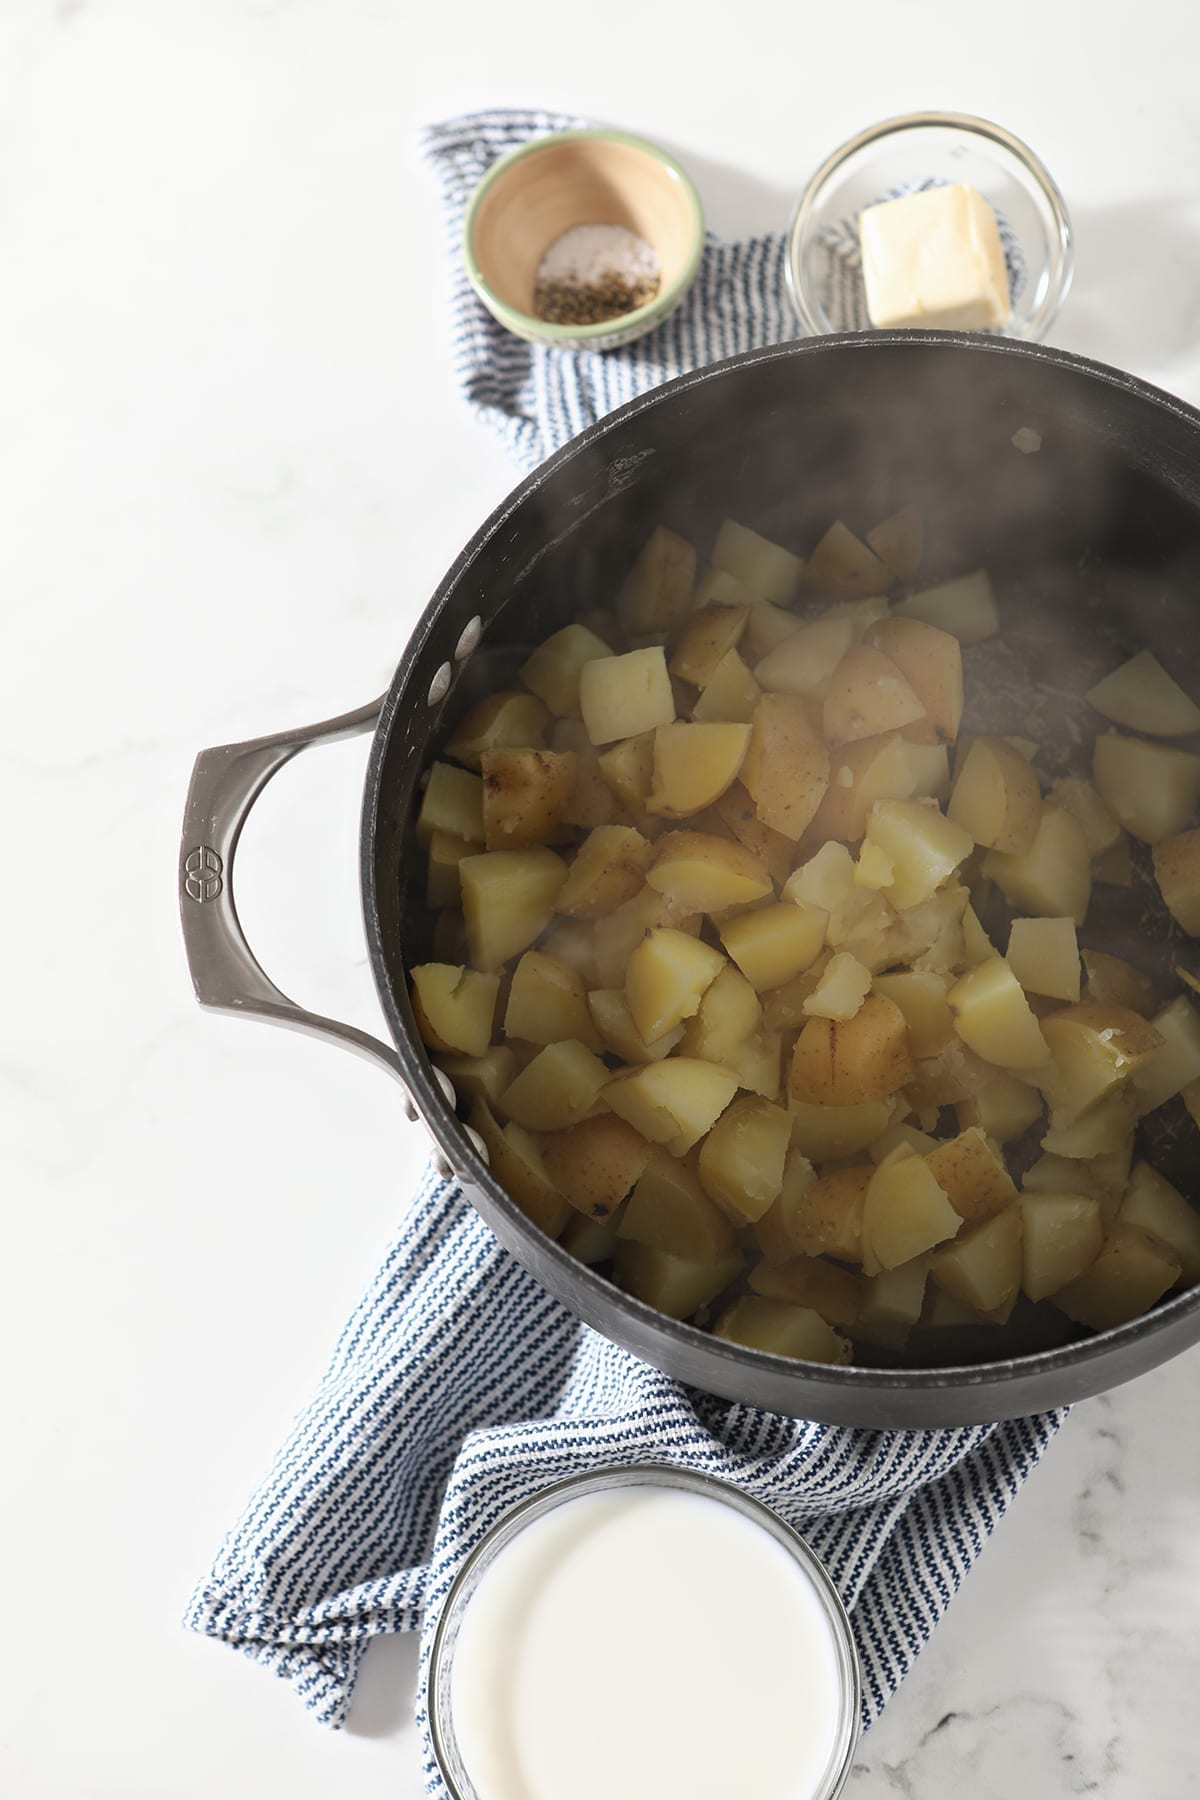 Boiled potatoes sit in a black pot next to bowls of milk, butter and seasonings